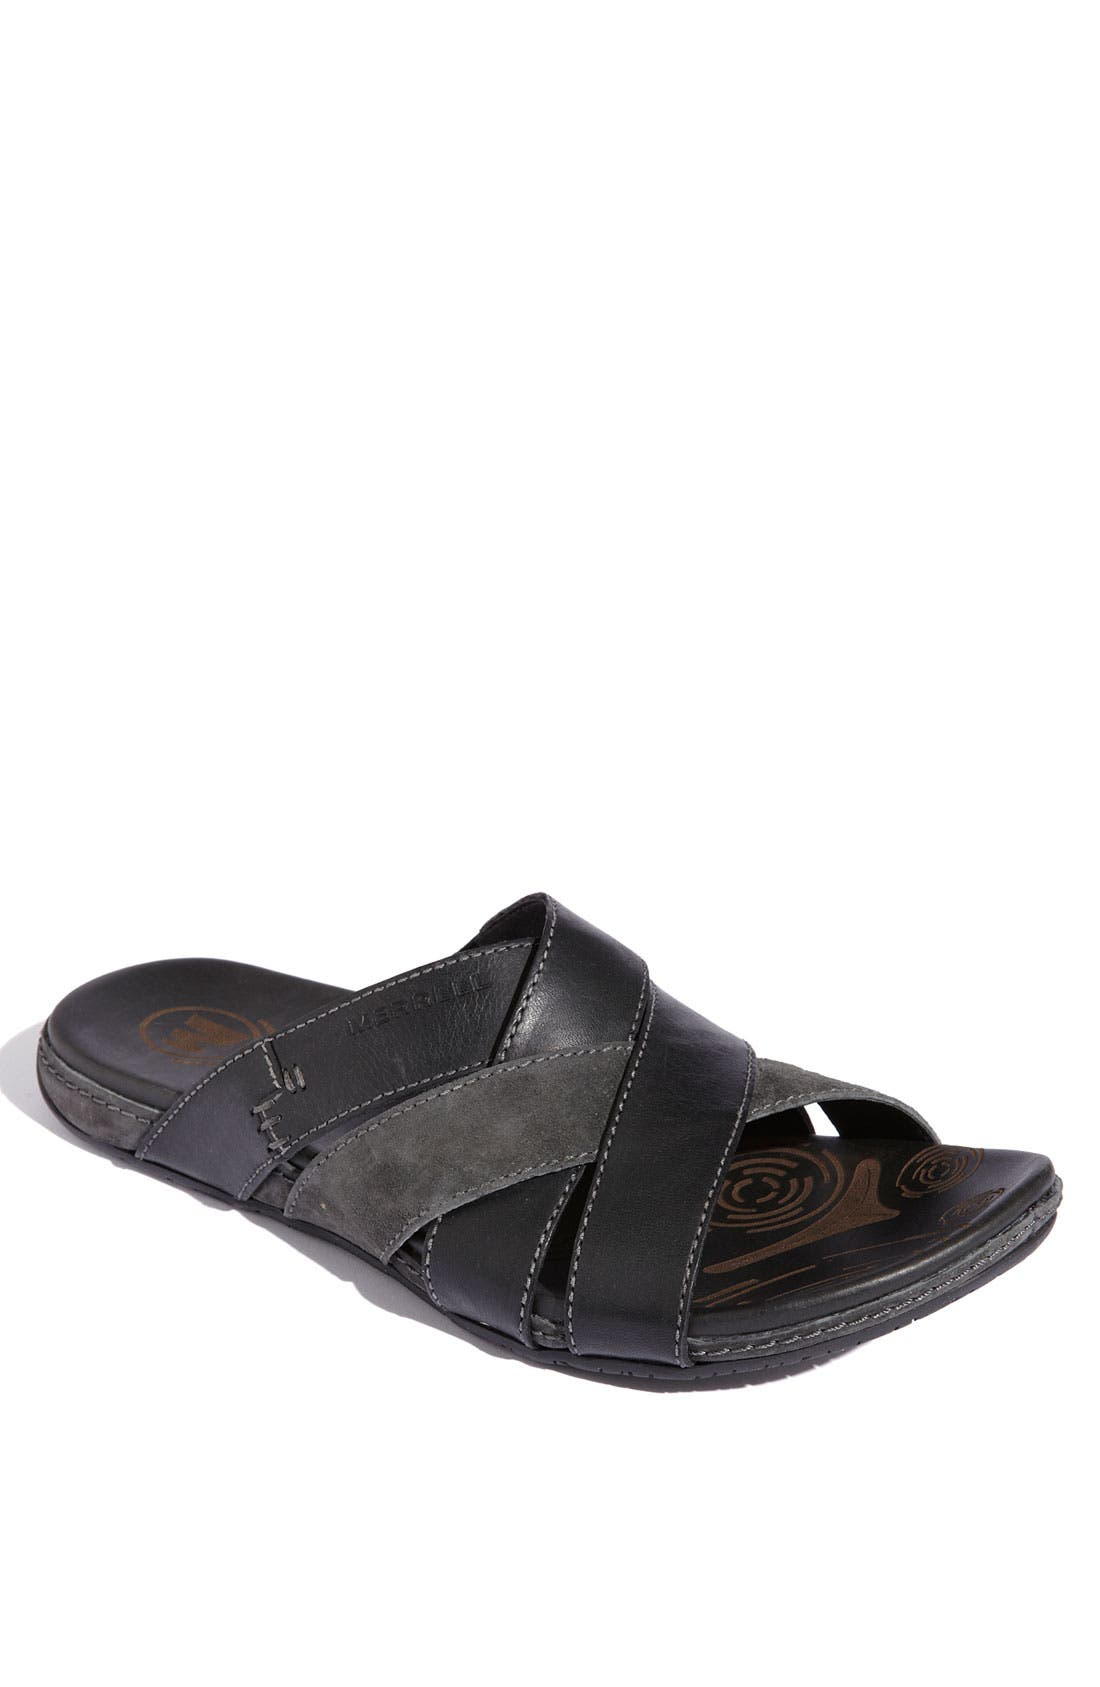 Alternate Image 1 Selected - Merrell 'Arrigo' Sandal